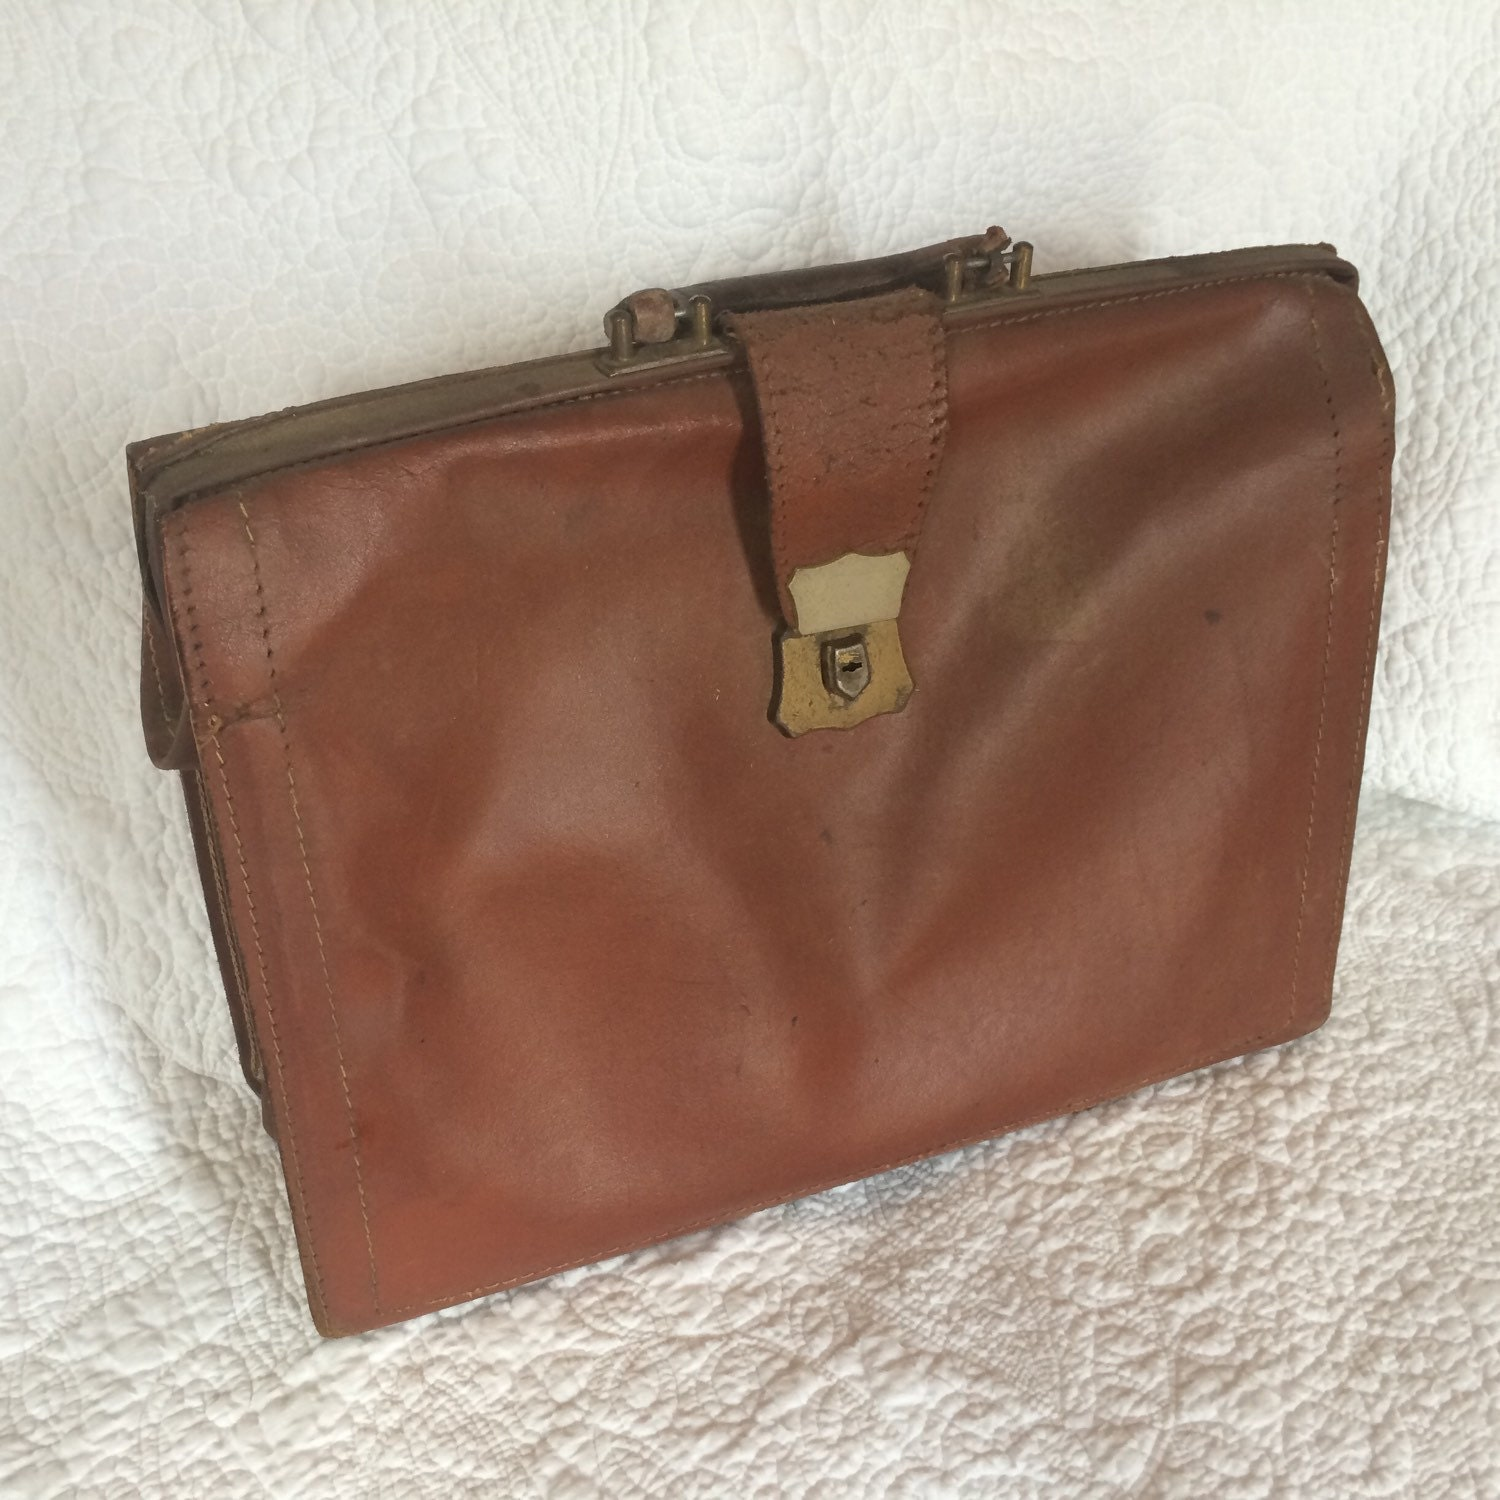 United Check Bag Fee Vintage Leather Satchel Briefcase Cognac Caramel Brown